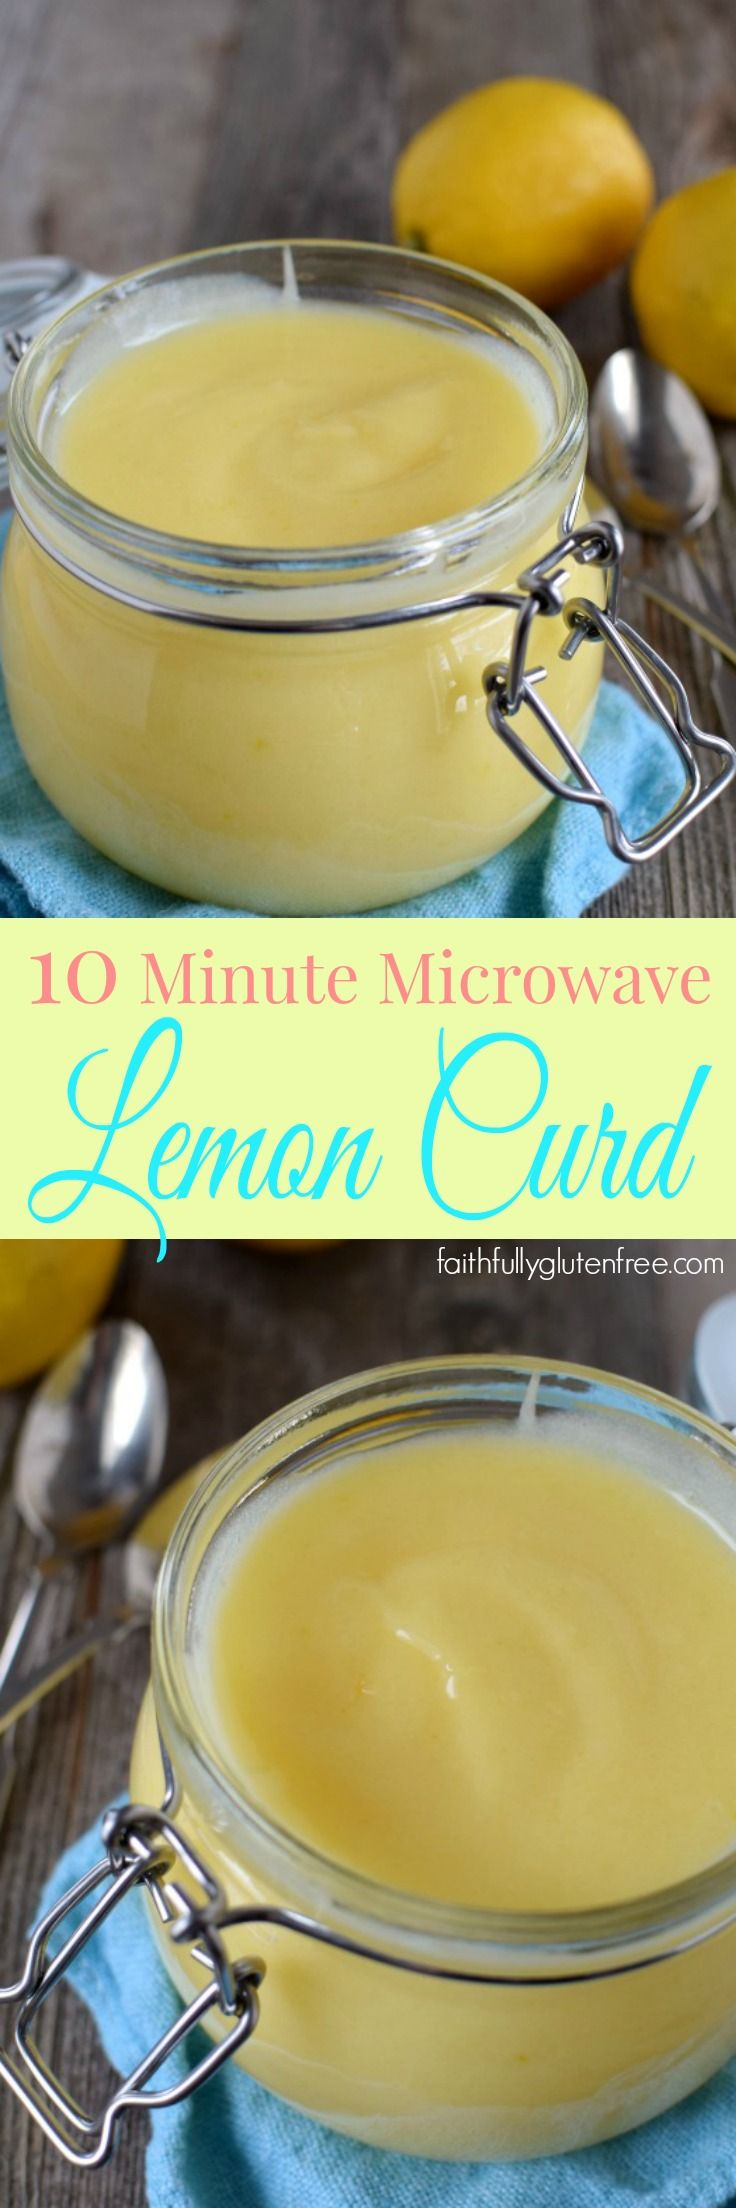 Super tart and tangy, you can make up a batch of this super Easy Microwave Lemon Curd in minutes!